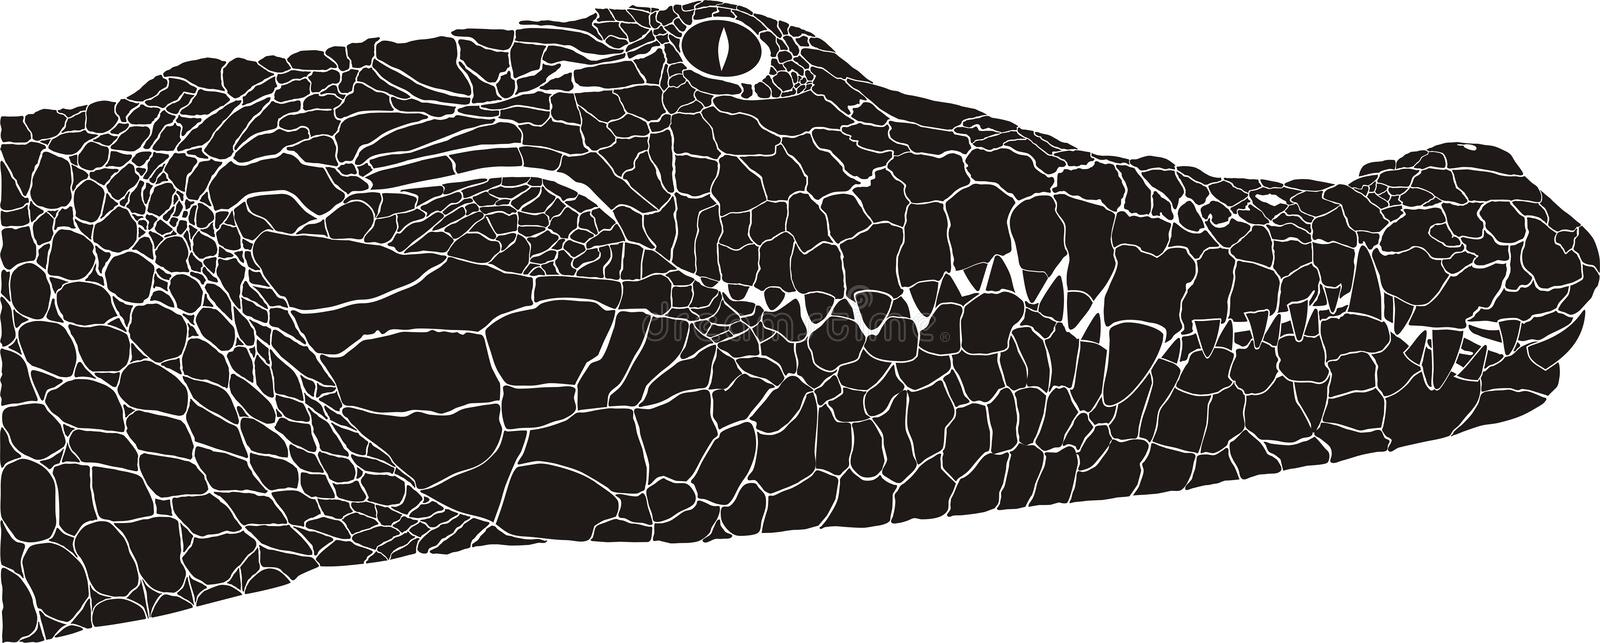 Crocodile head stock illustration